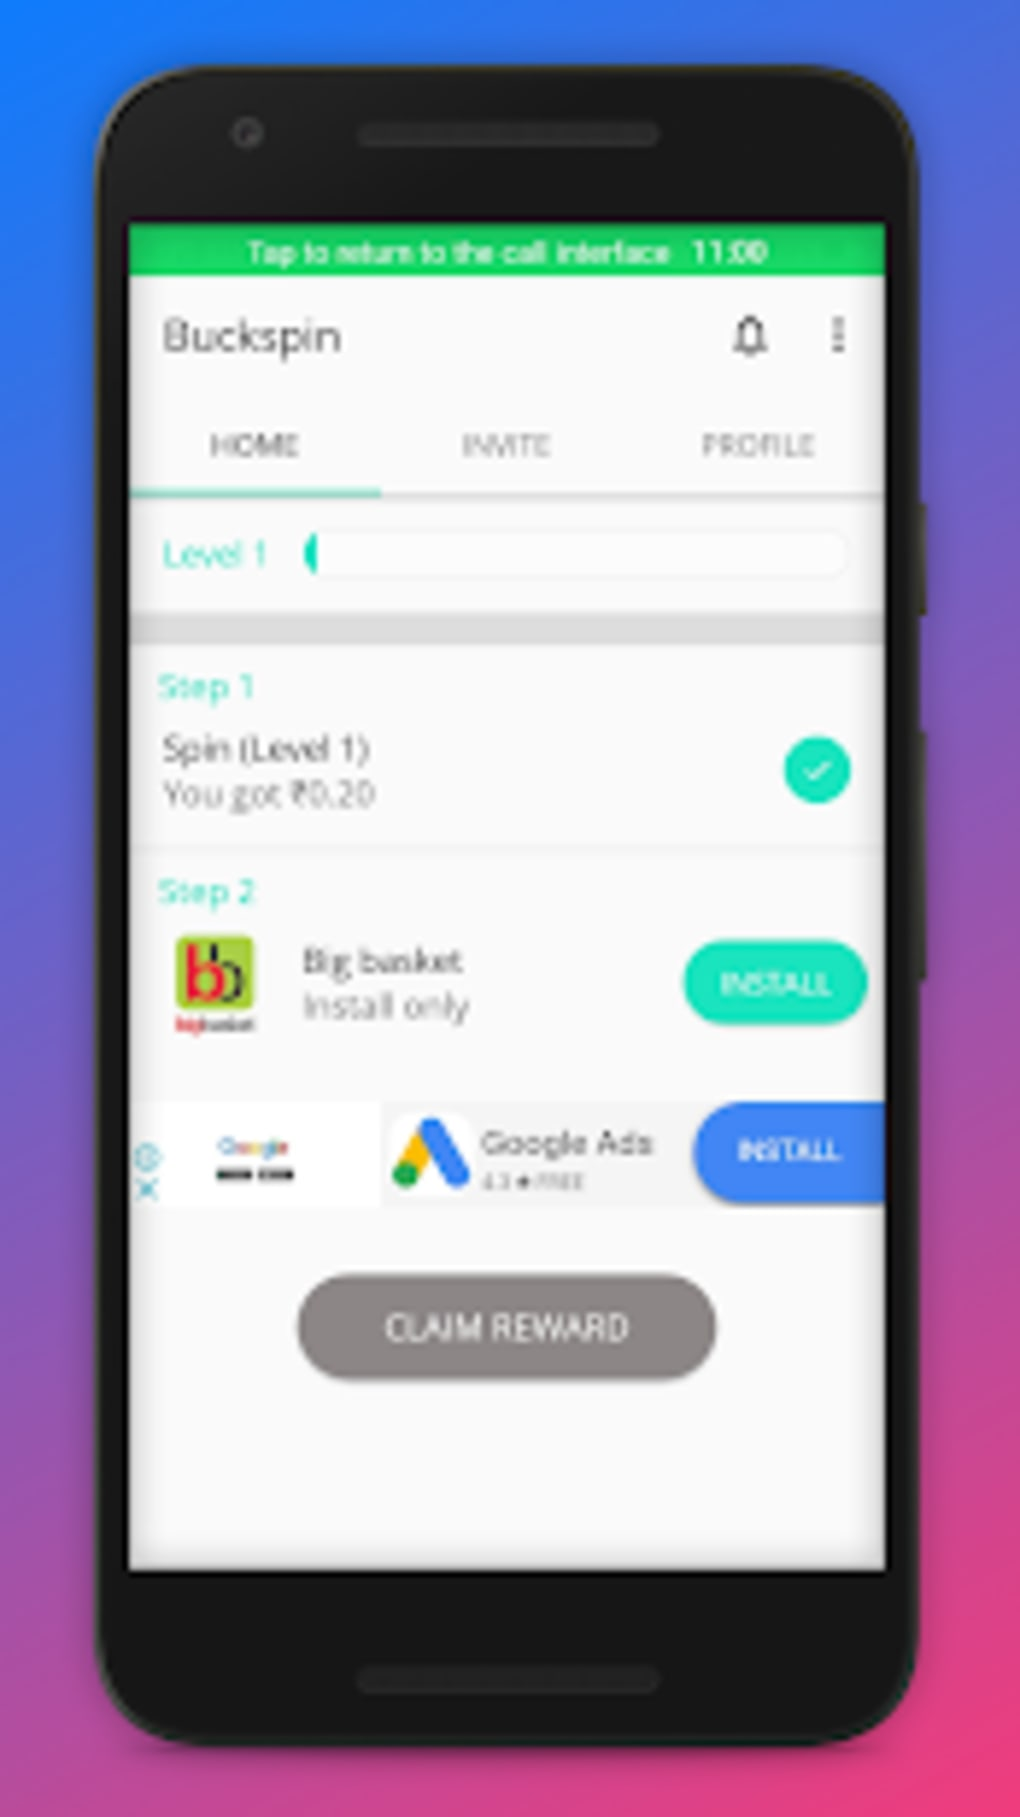 Buckspin for Android - Download